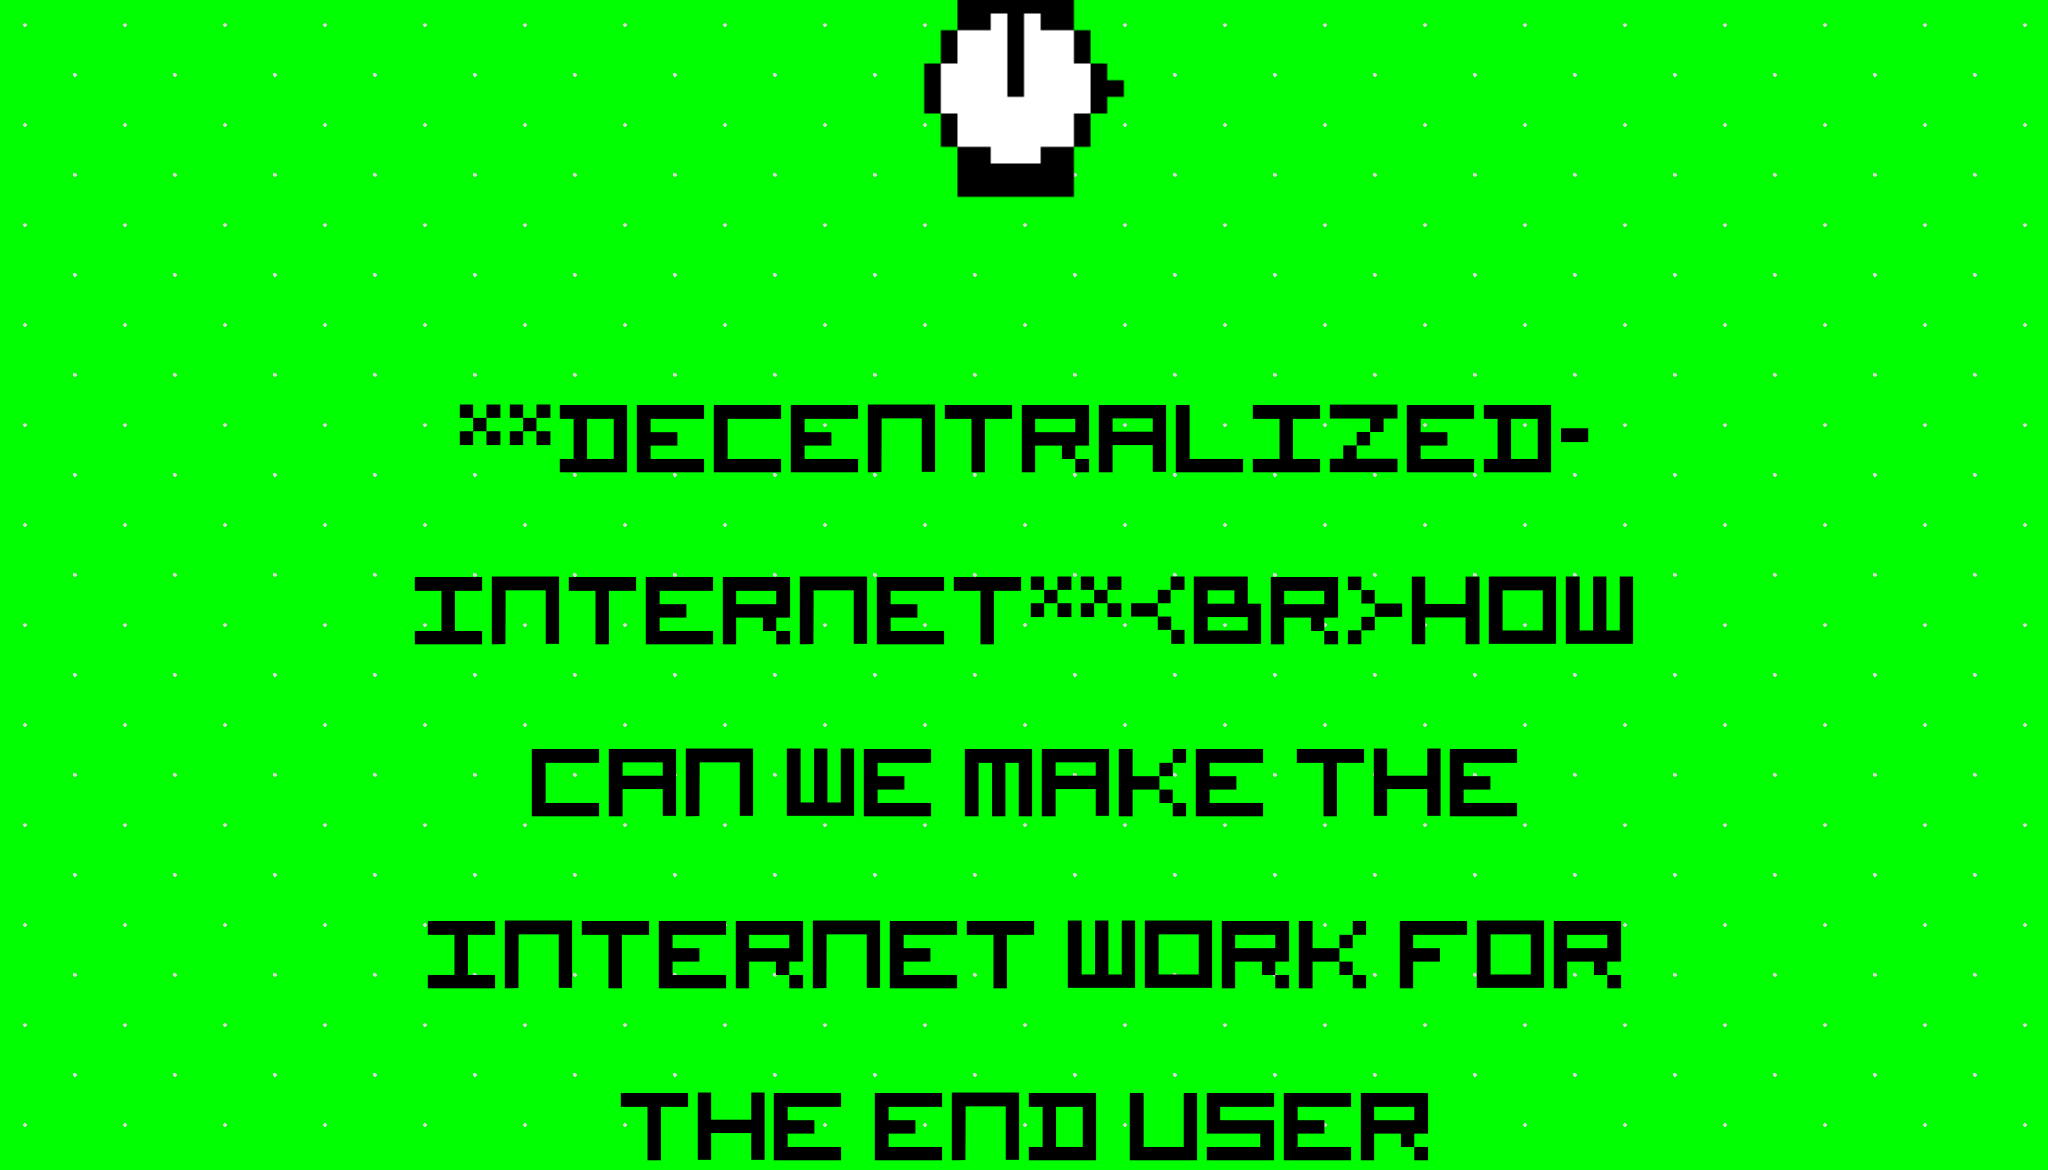 #decentralized-internet stories